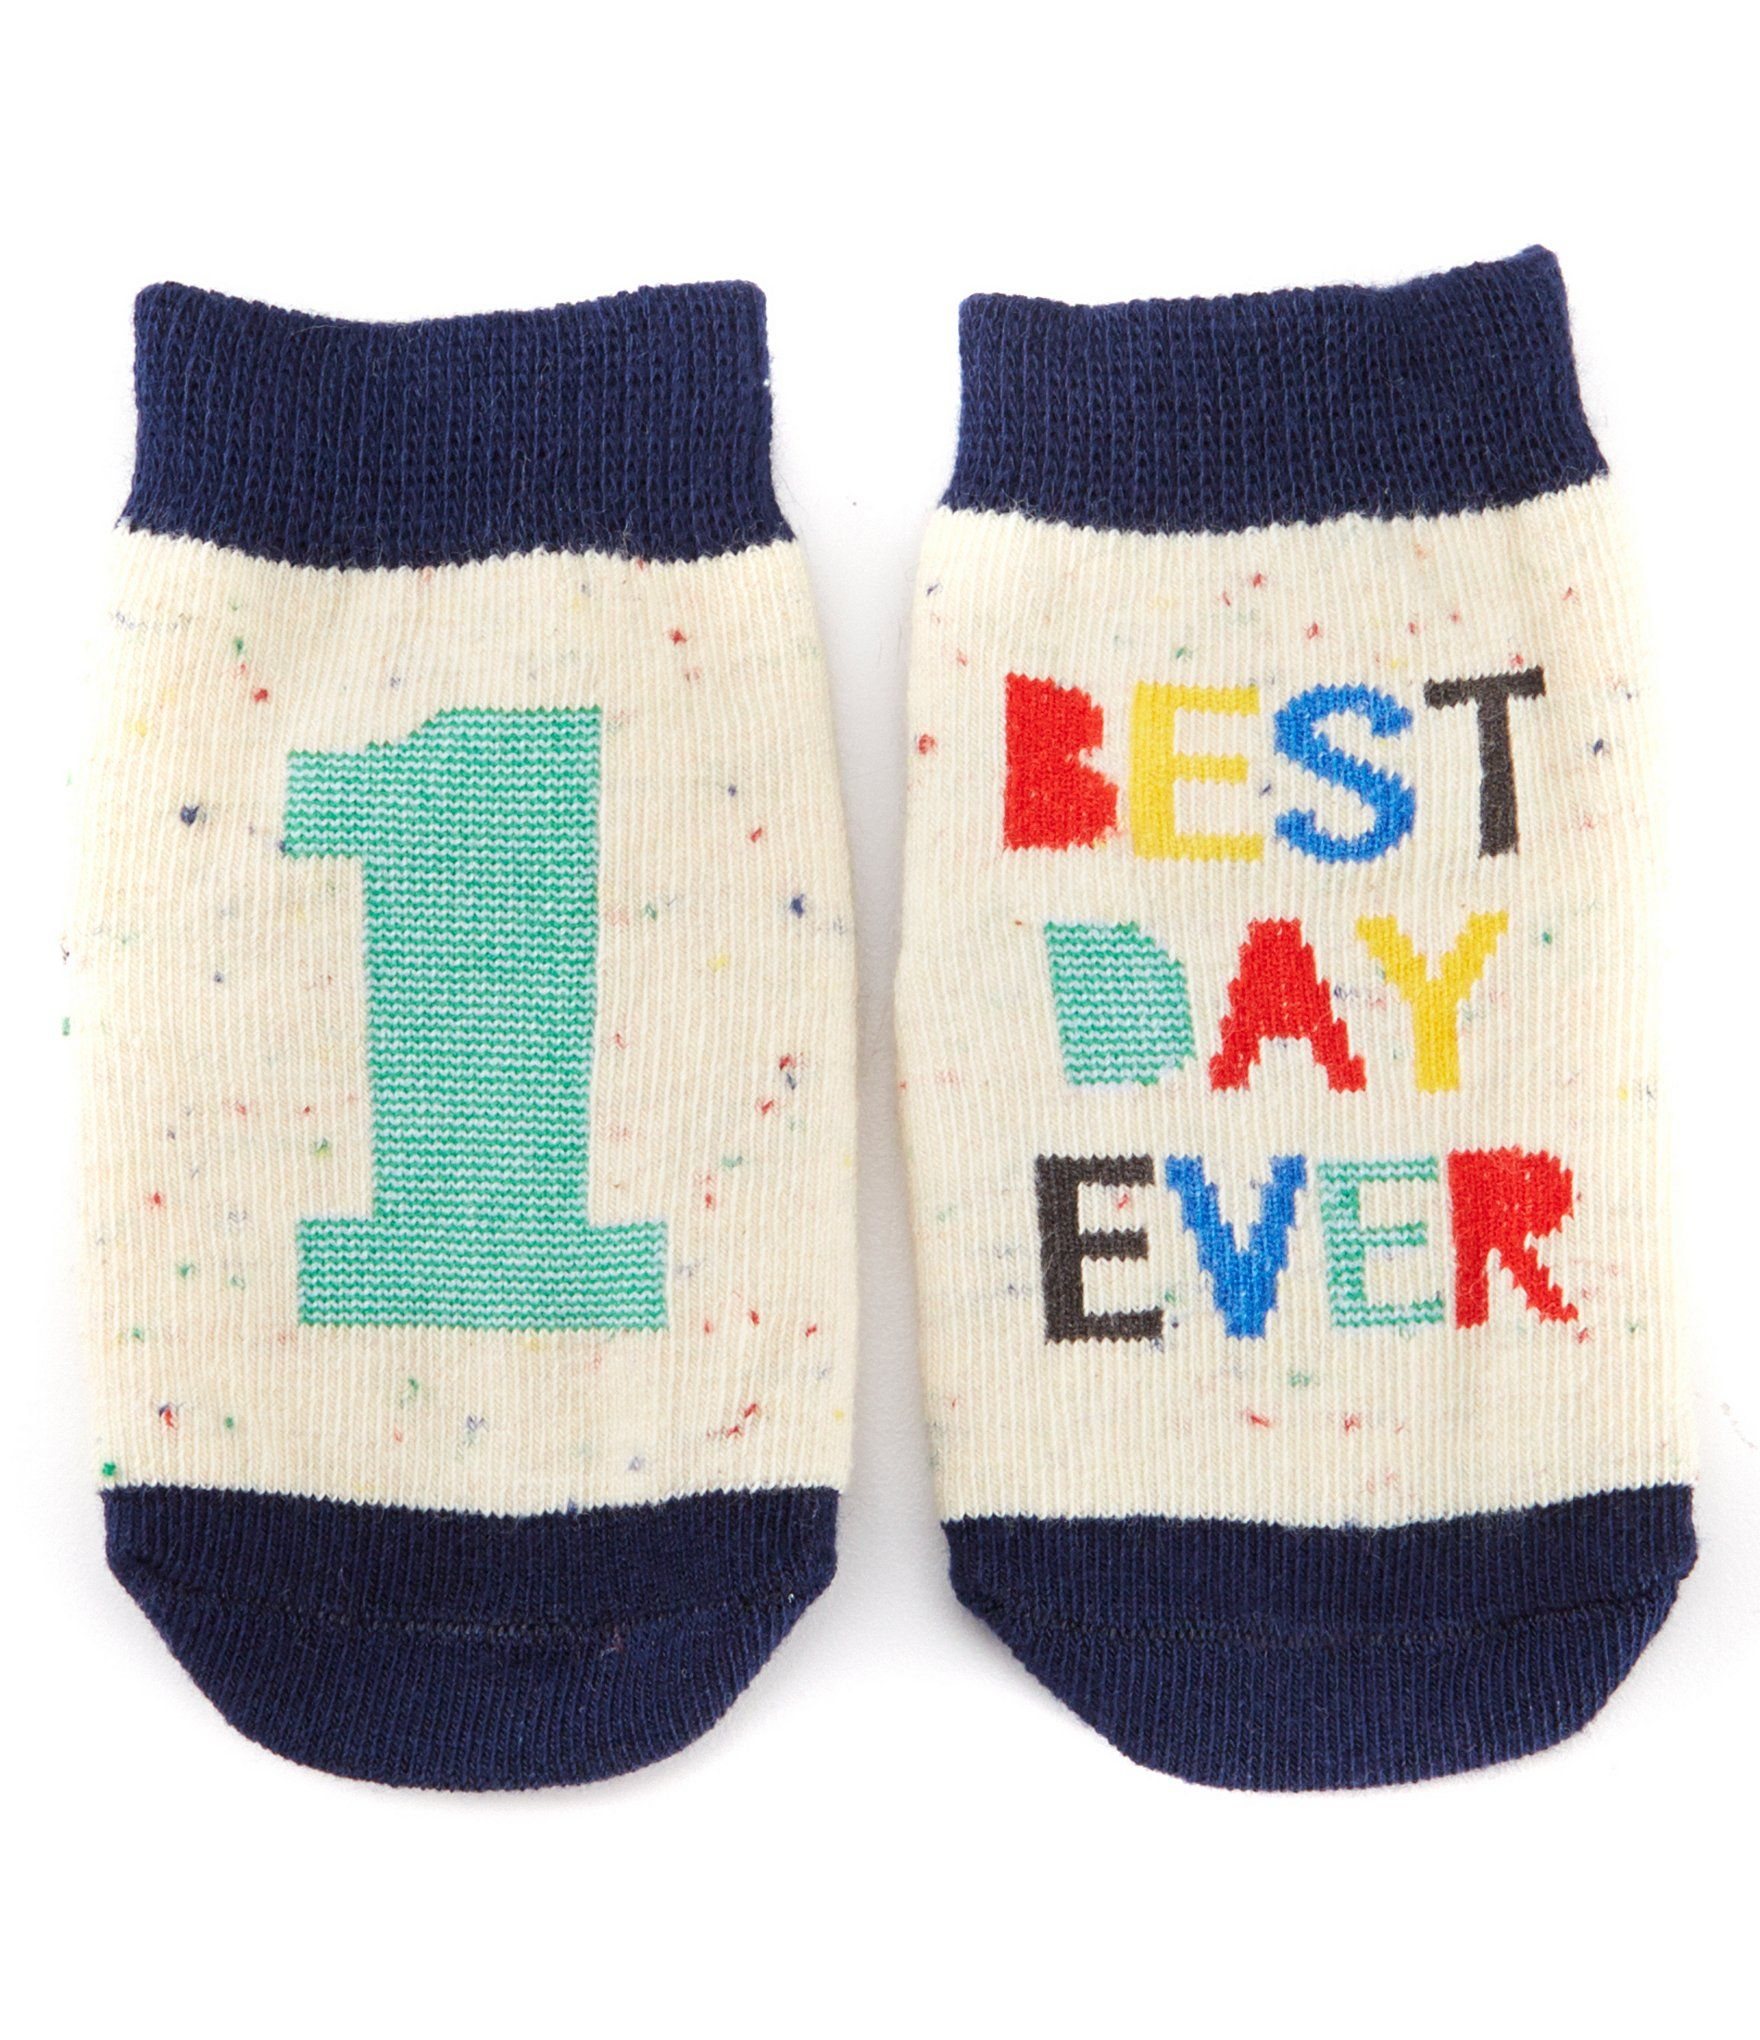 Baby Boy Socks Cotton Blend Infant 3 Pairs 0-12 Months